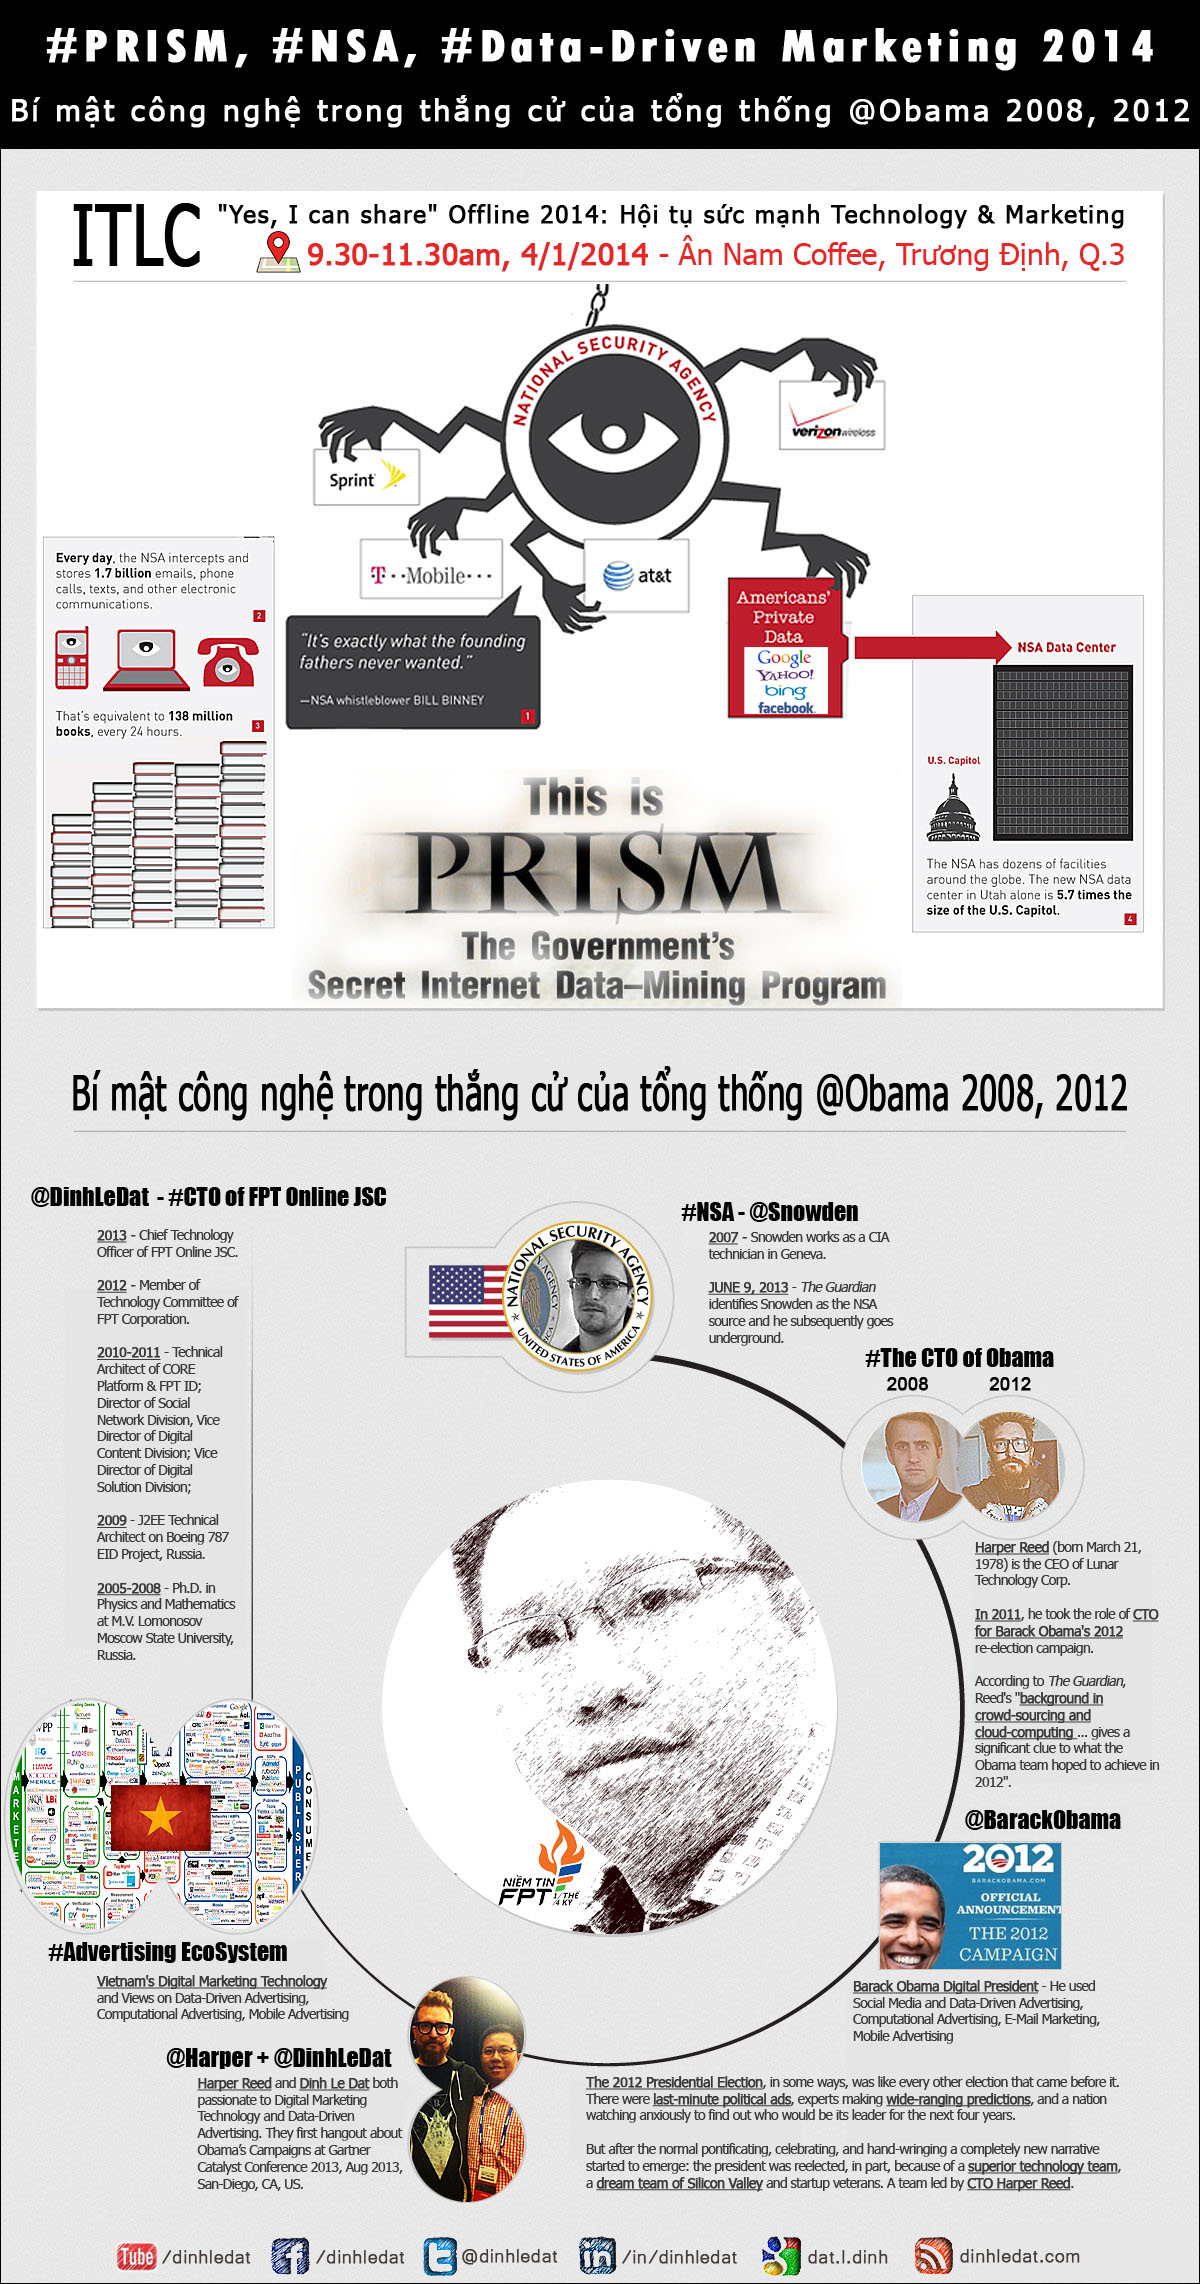 Dinh_Le_Dat Data-Driven Marketing 2014 - Obama Campaign - Infographic